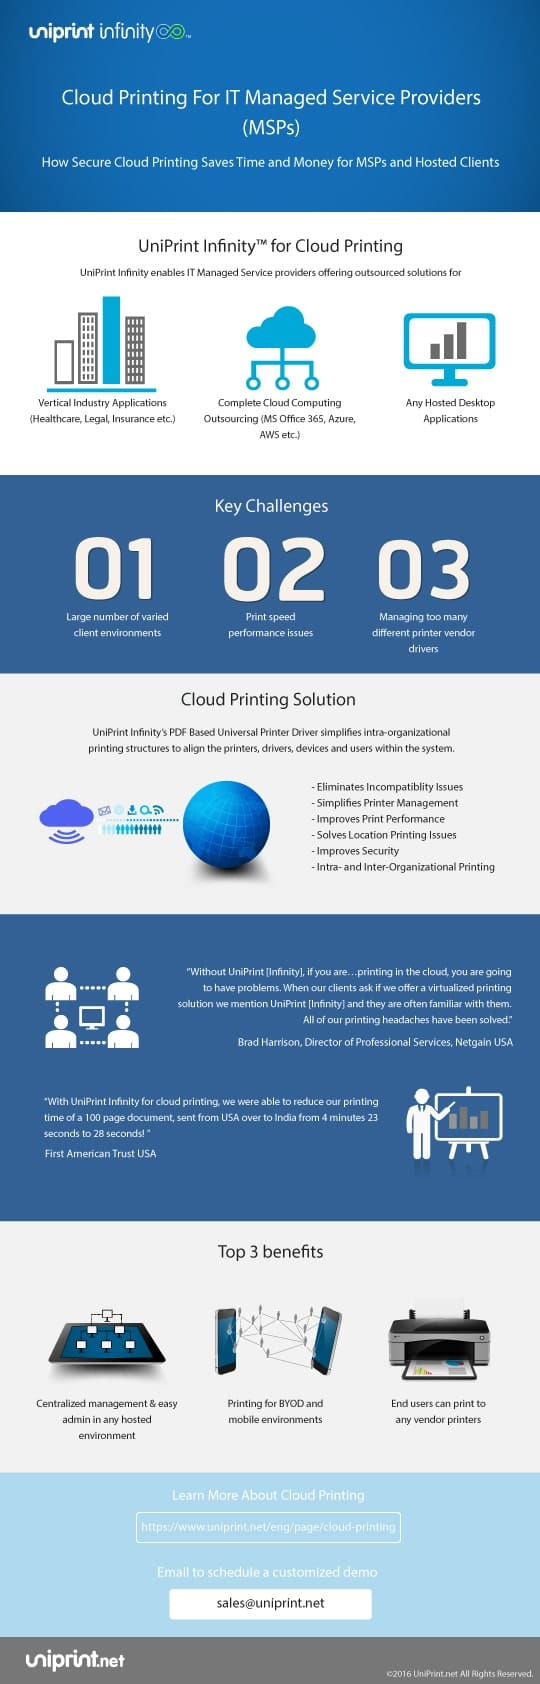 Cloud Printing Managed Service Providers infographic